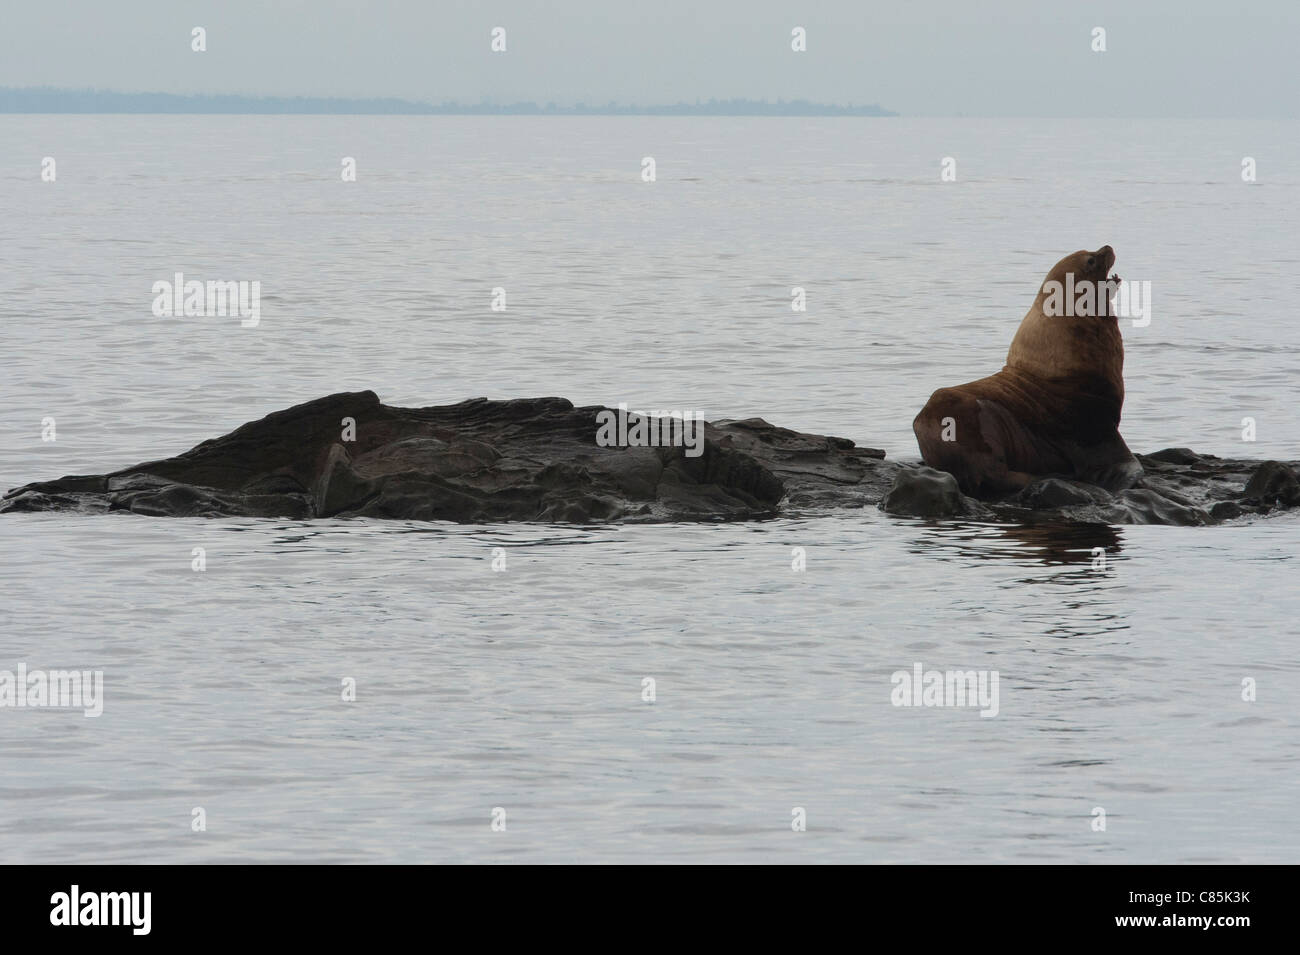 Stellar Sea Lions in the Strait of Georgia. - Stock Image